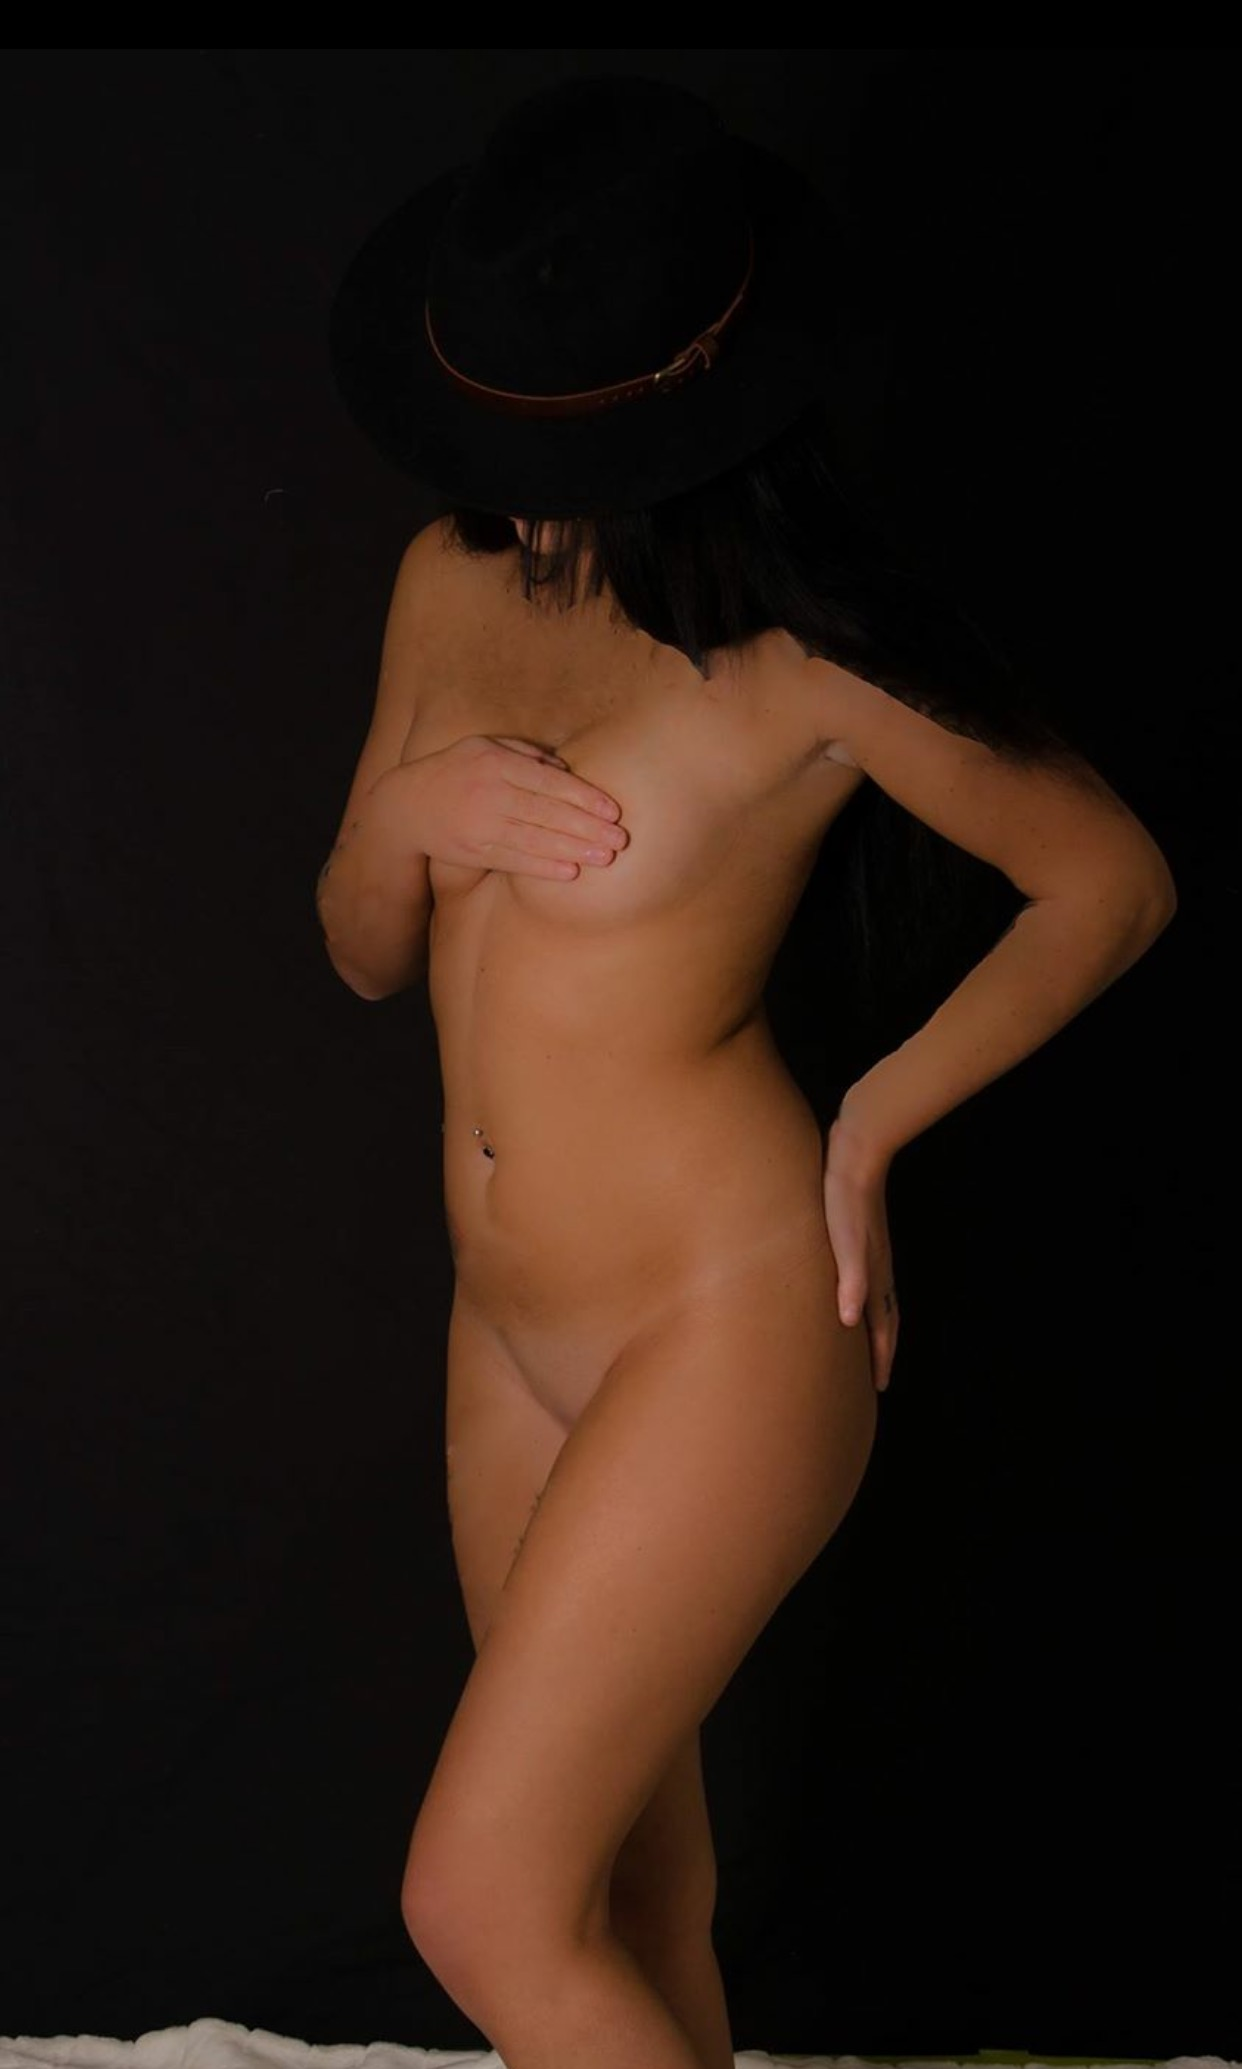 massage escort privat massage og escort